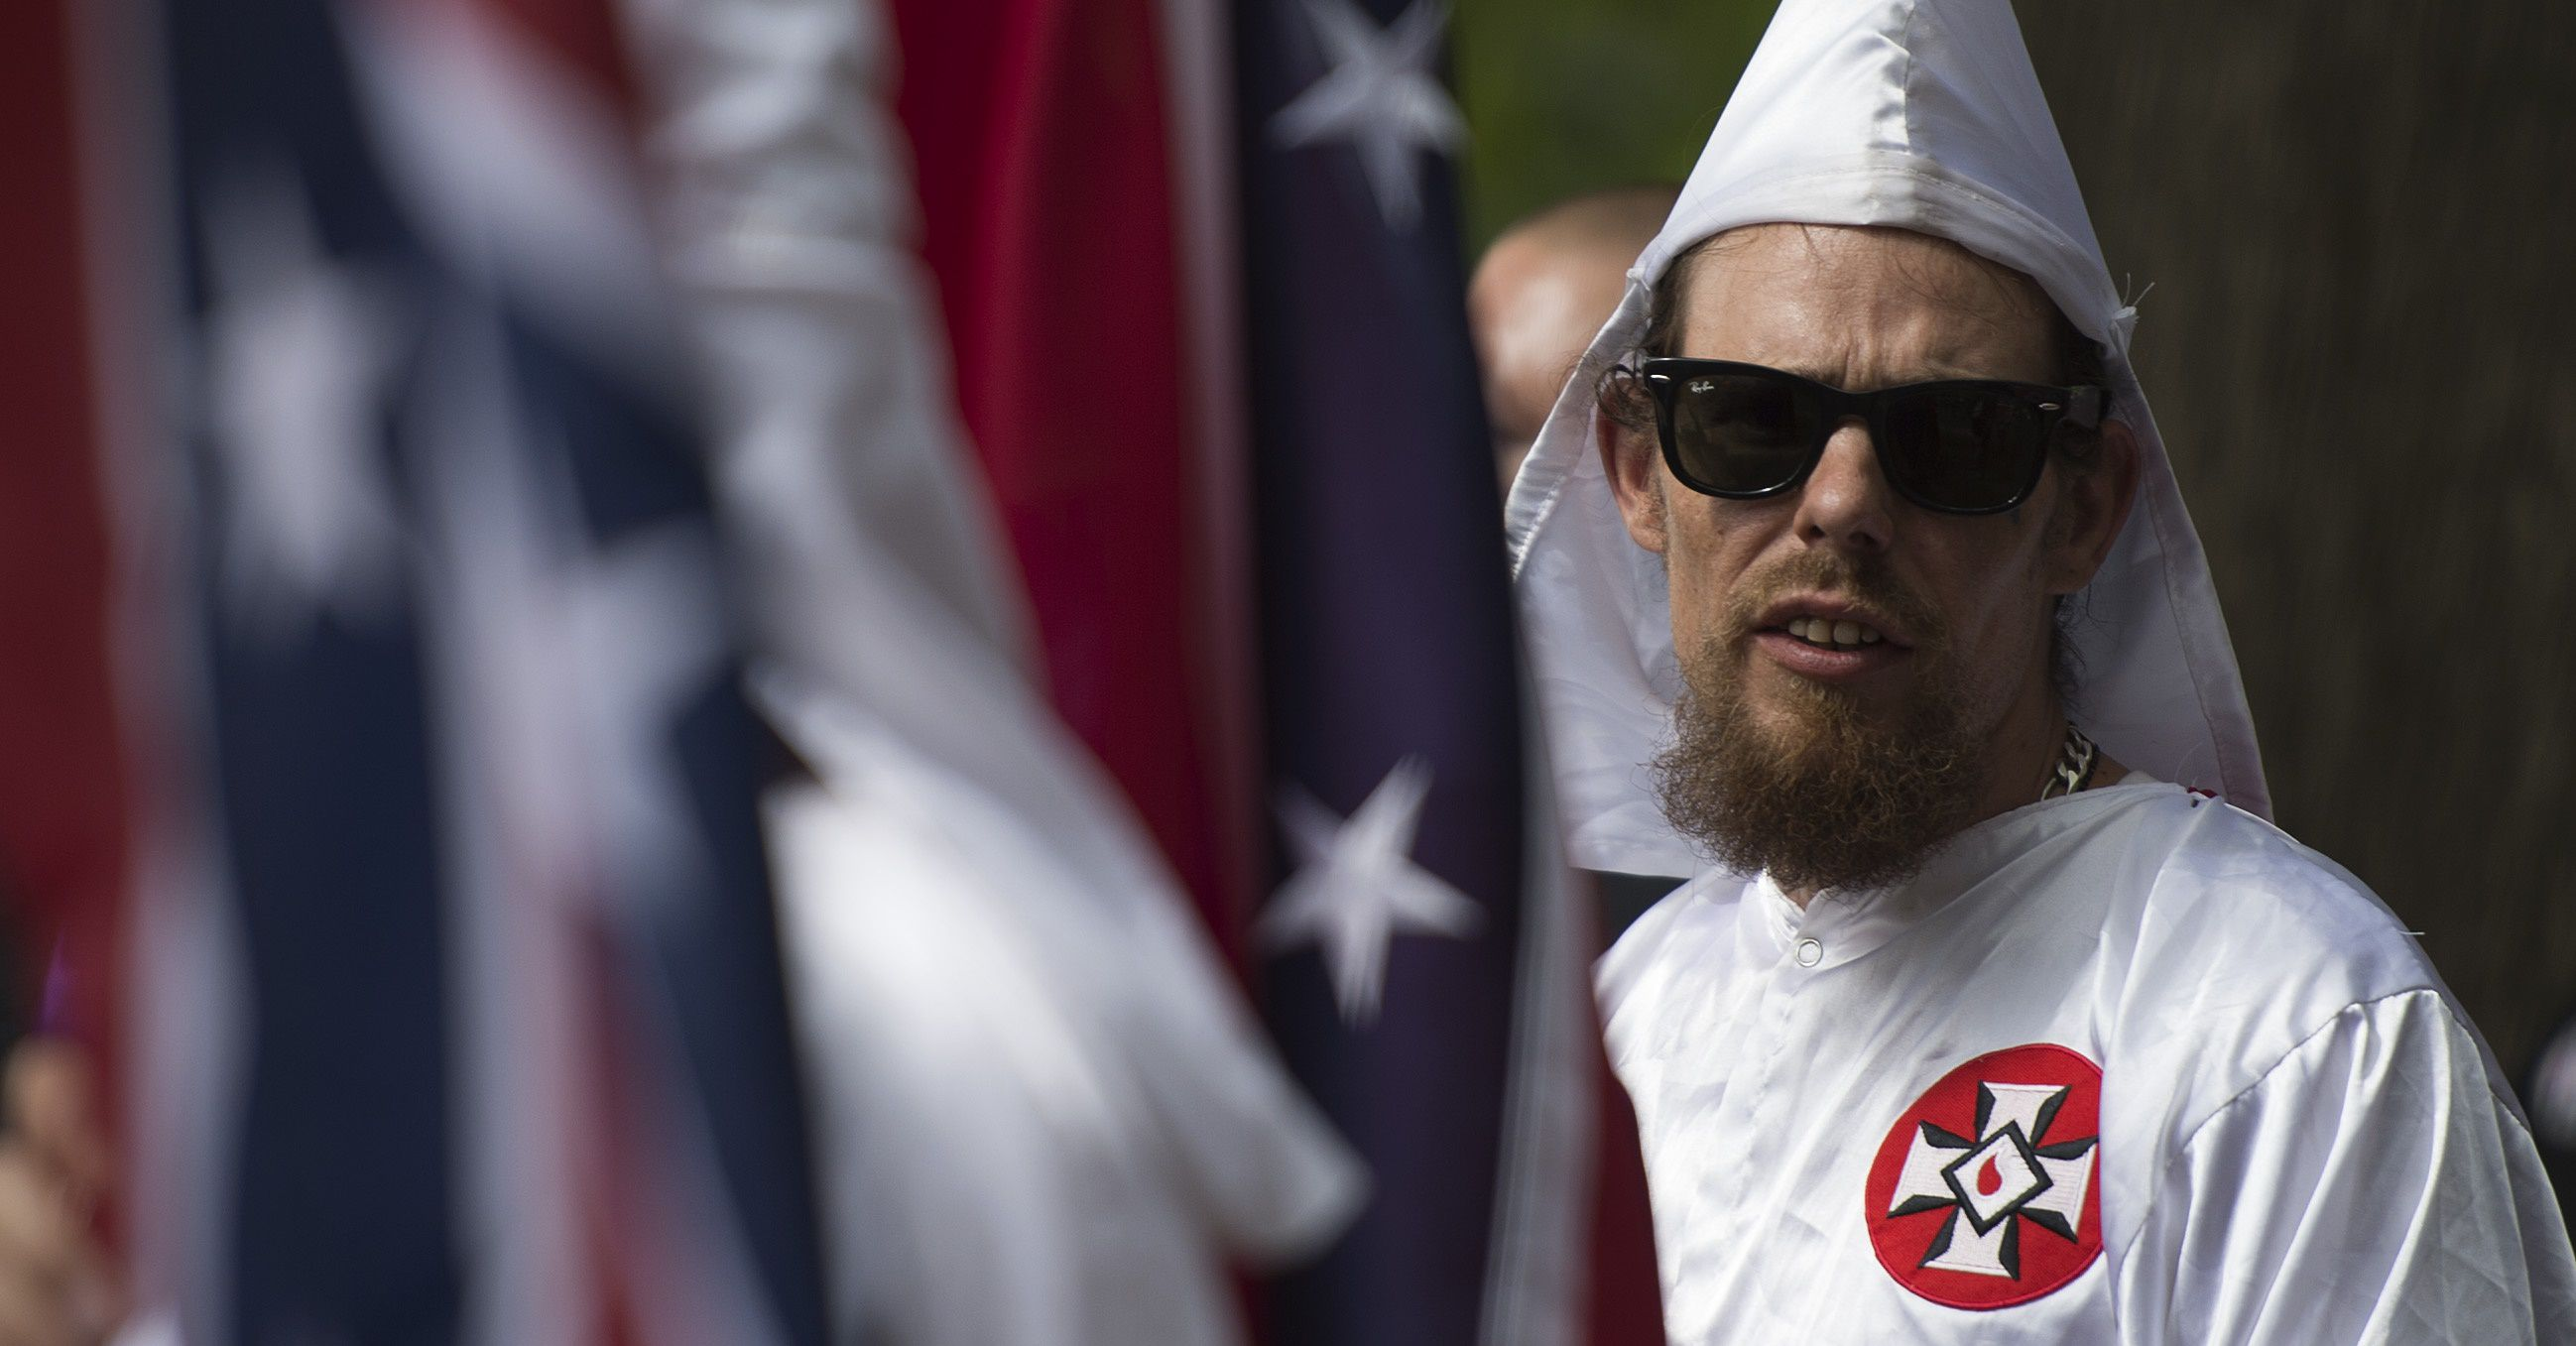 A member of the Ku Klux Klan looks on during a rally, calling for the protection of Southern Confederate monuments, in Charlottesville, Virginia on July 8, 2017. The afternoon rally in this quiet university town has been authorized by officials in Virginia and stirred heated debate in America, where critics say the far right has been energized by Donald Trump's election to the presidency.  / AFP PHOTO / ANDREW CABALLERO-REYNOLDS        (Photo credit should read ANDREW CABALLERO-REYNOLDS/AFP/Getty Images)